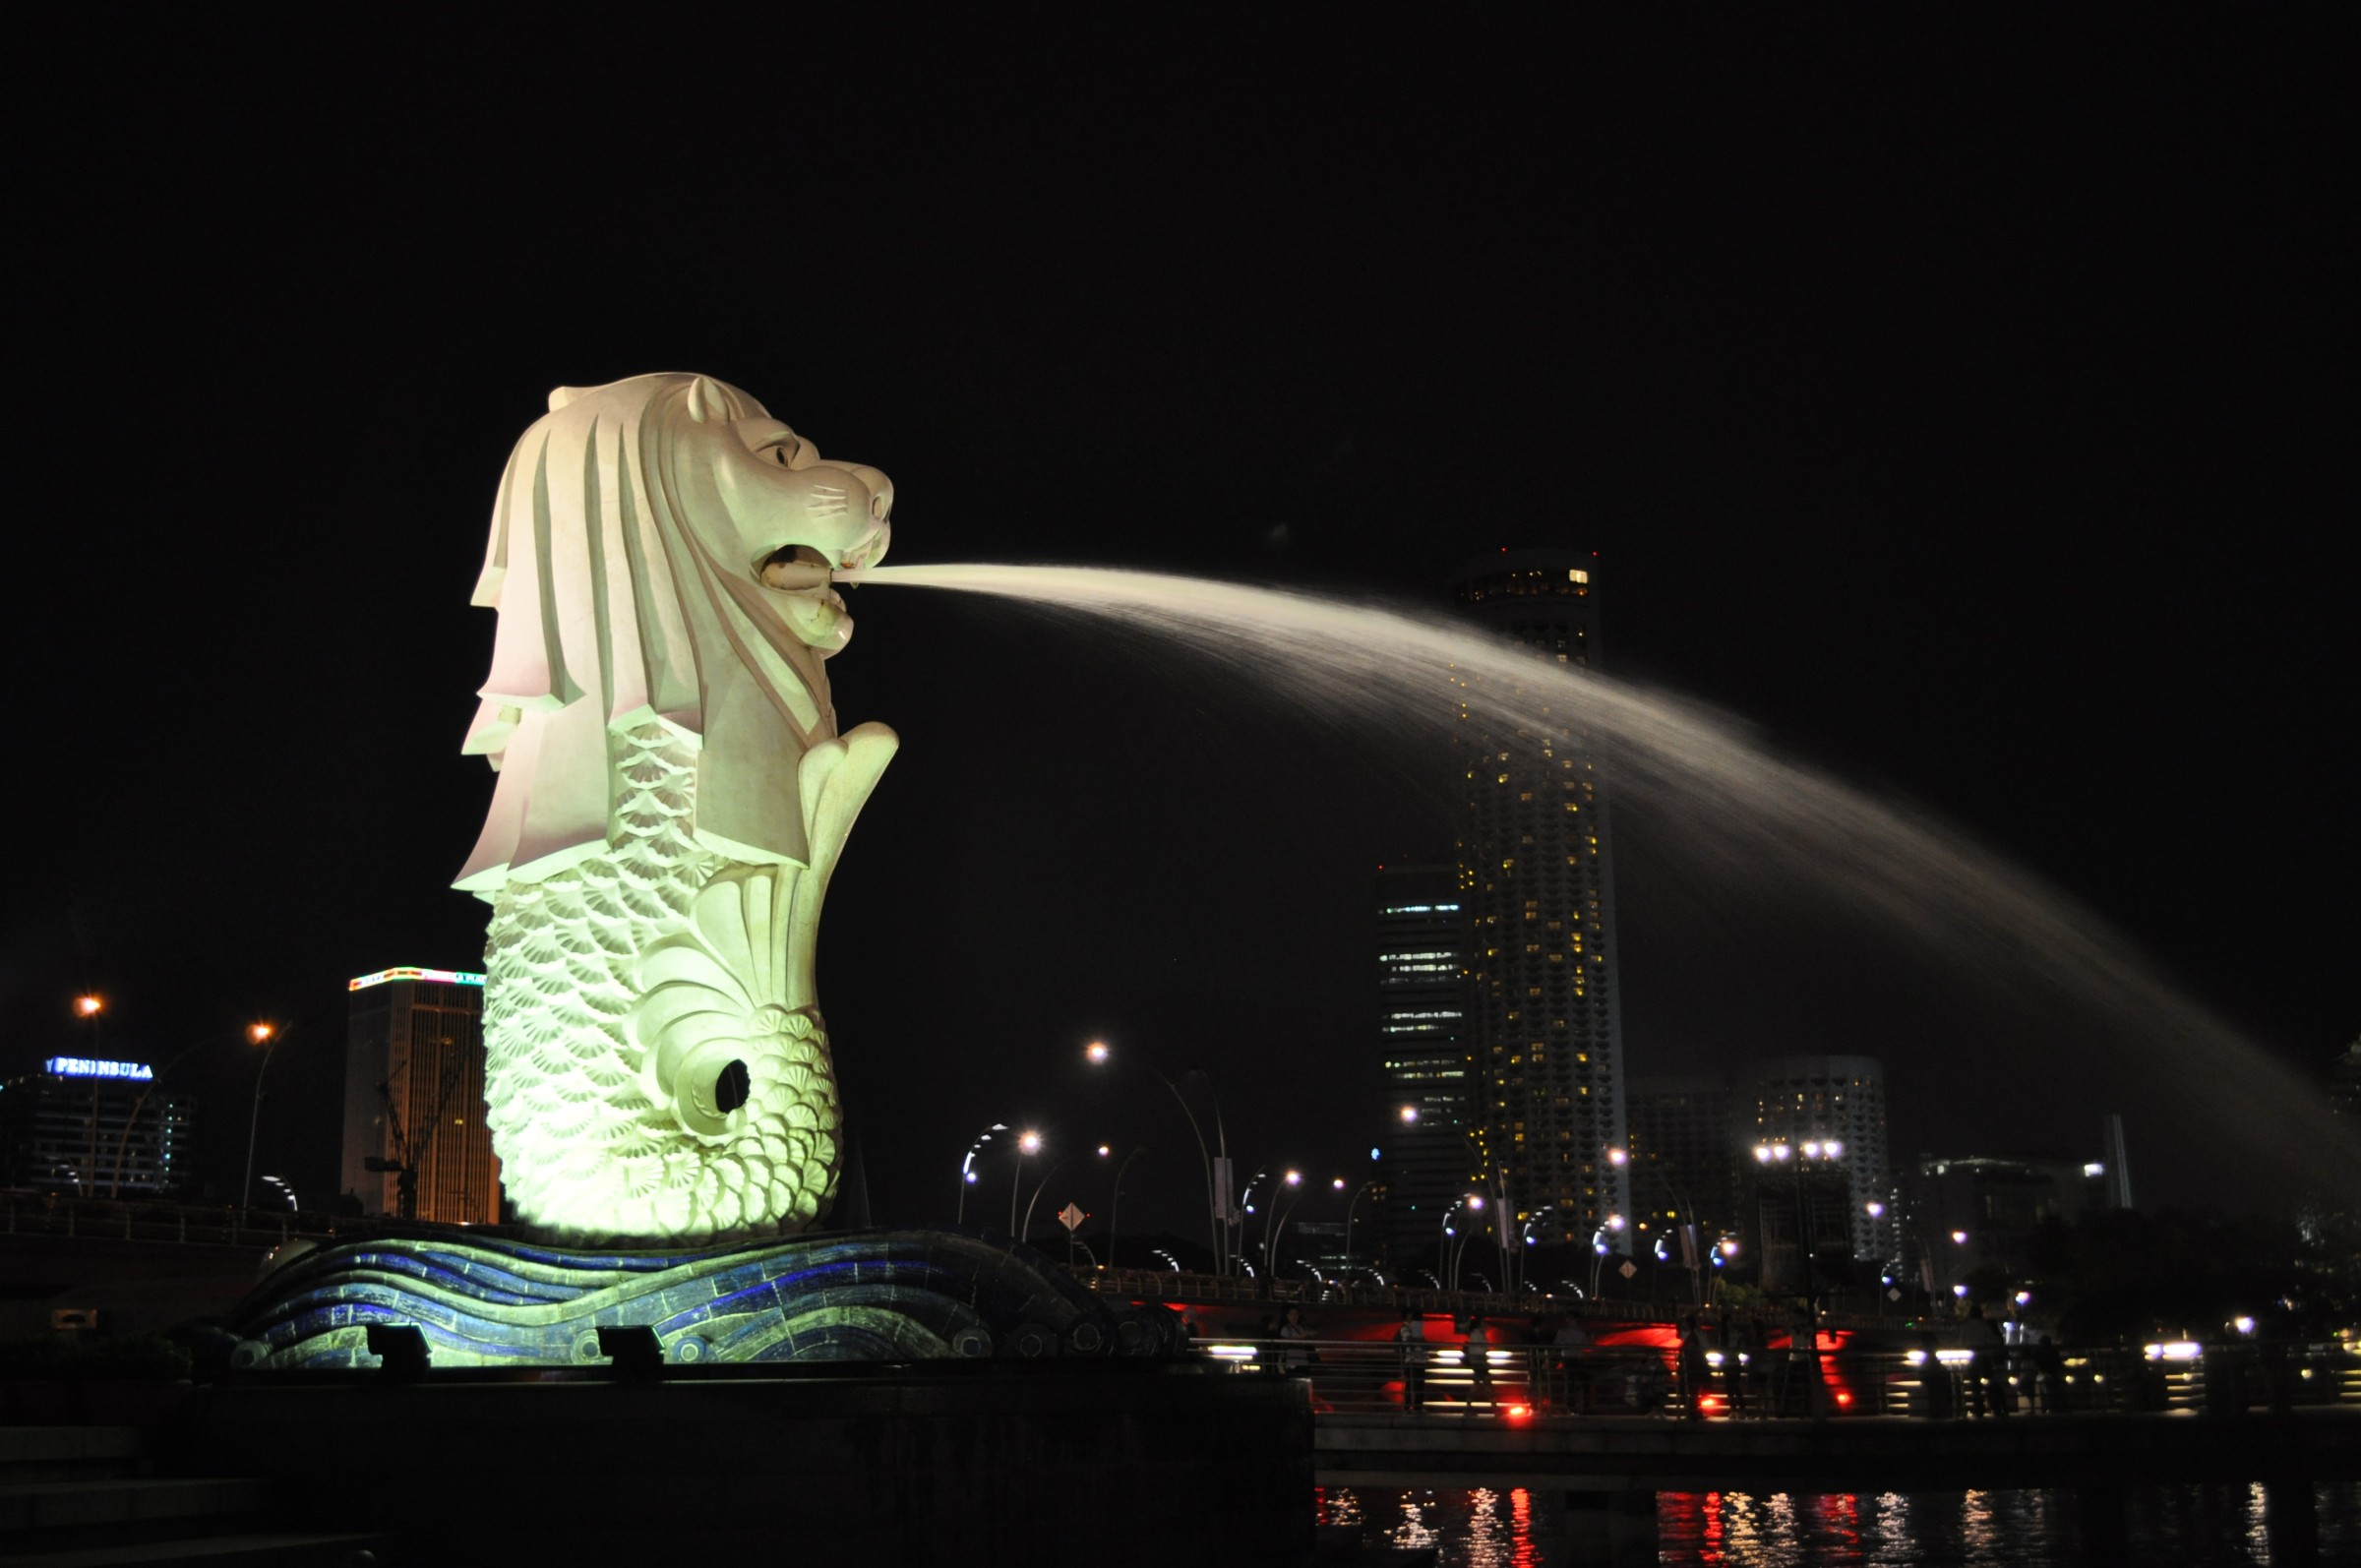 The famous Merlion of Singapore